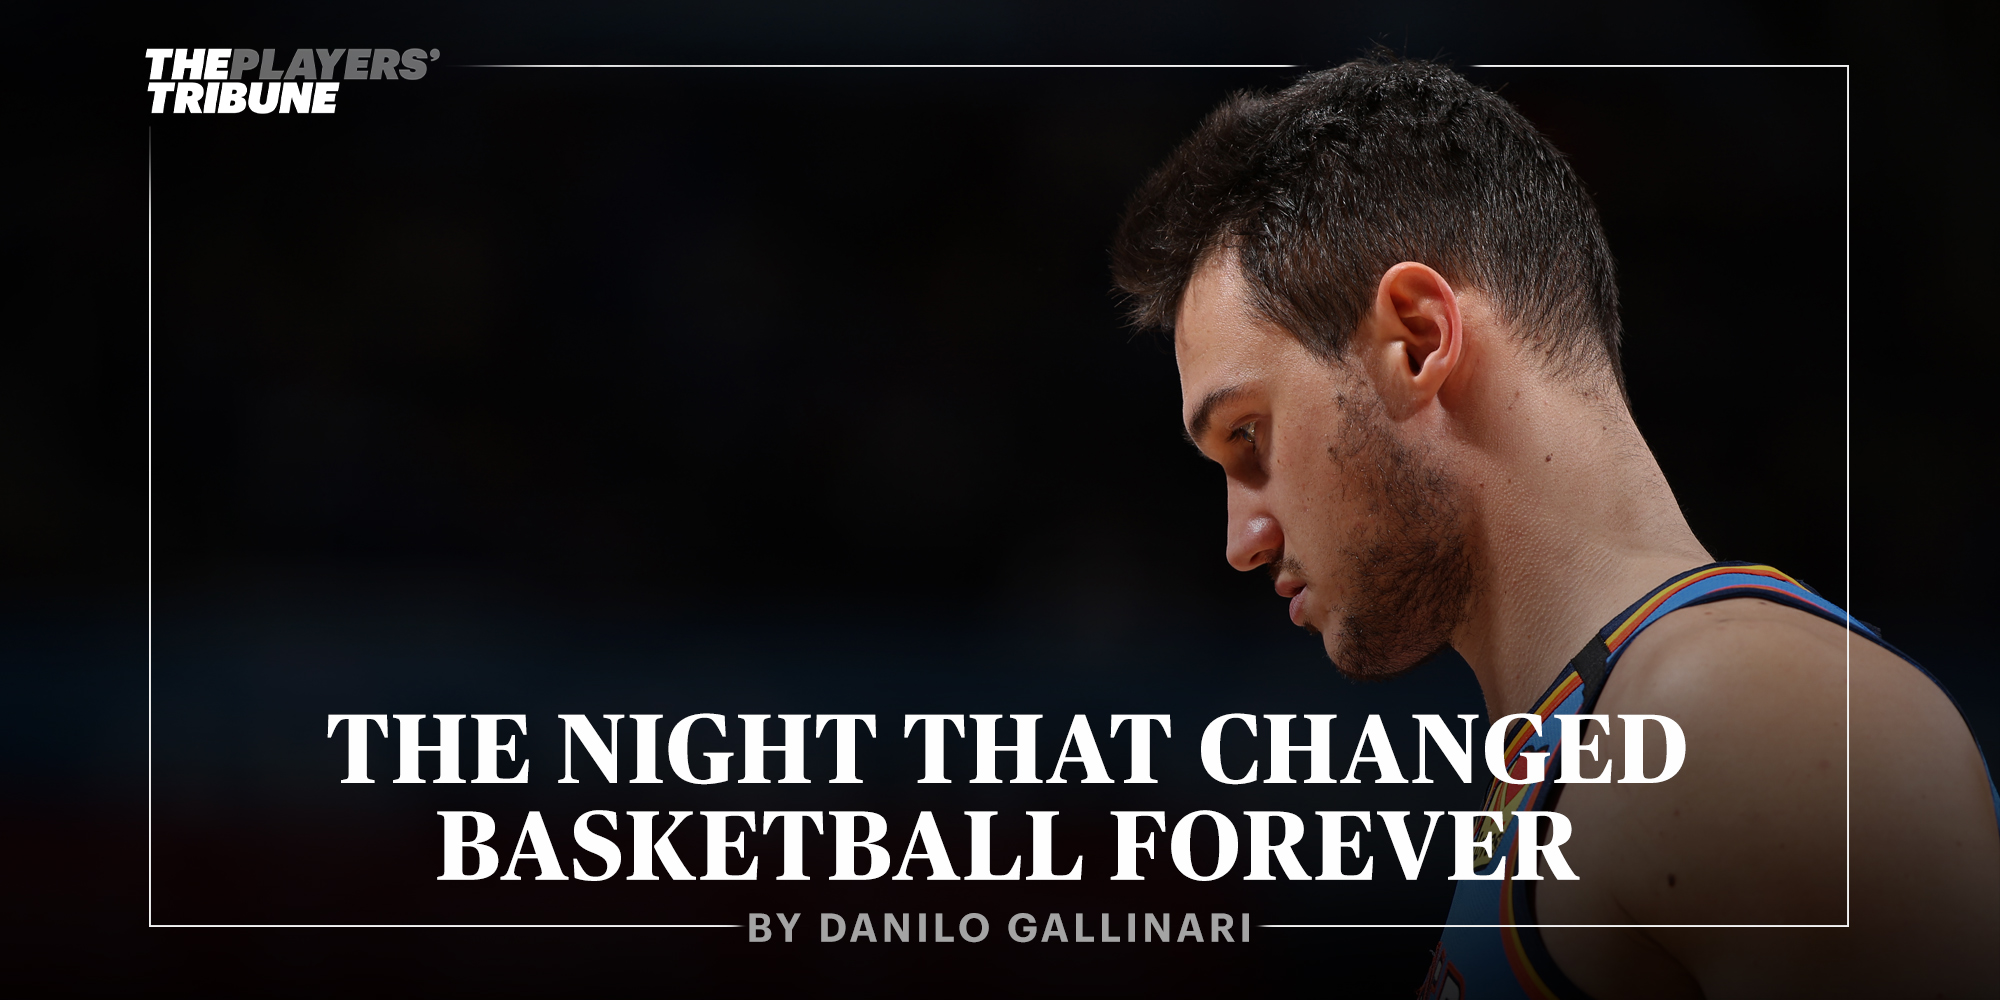 The Night That Changed Basketball Forever